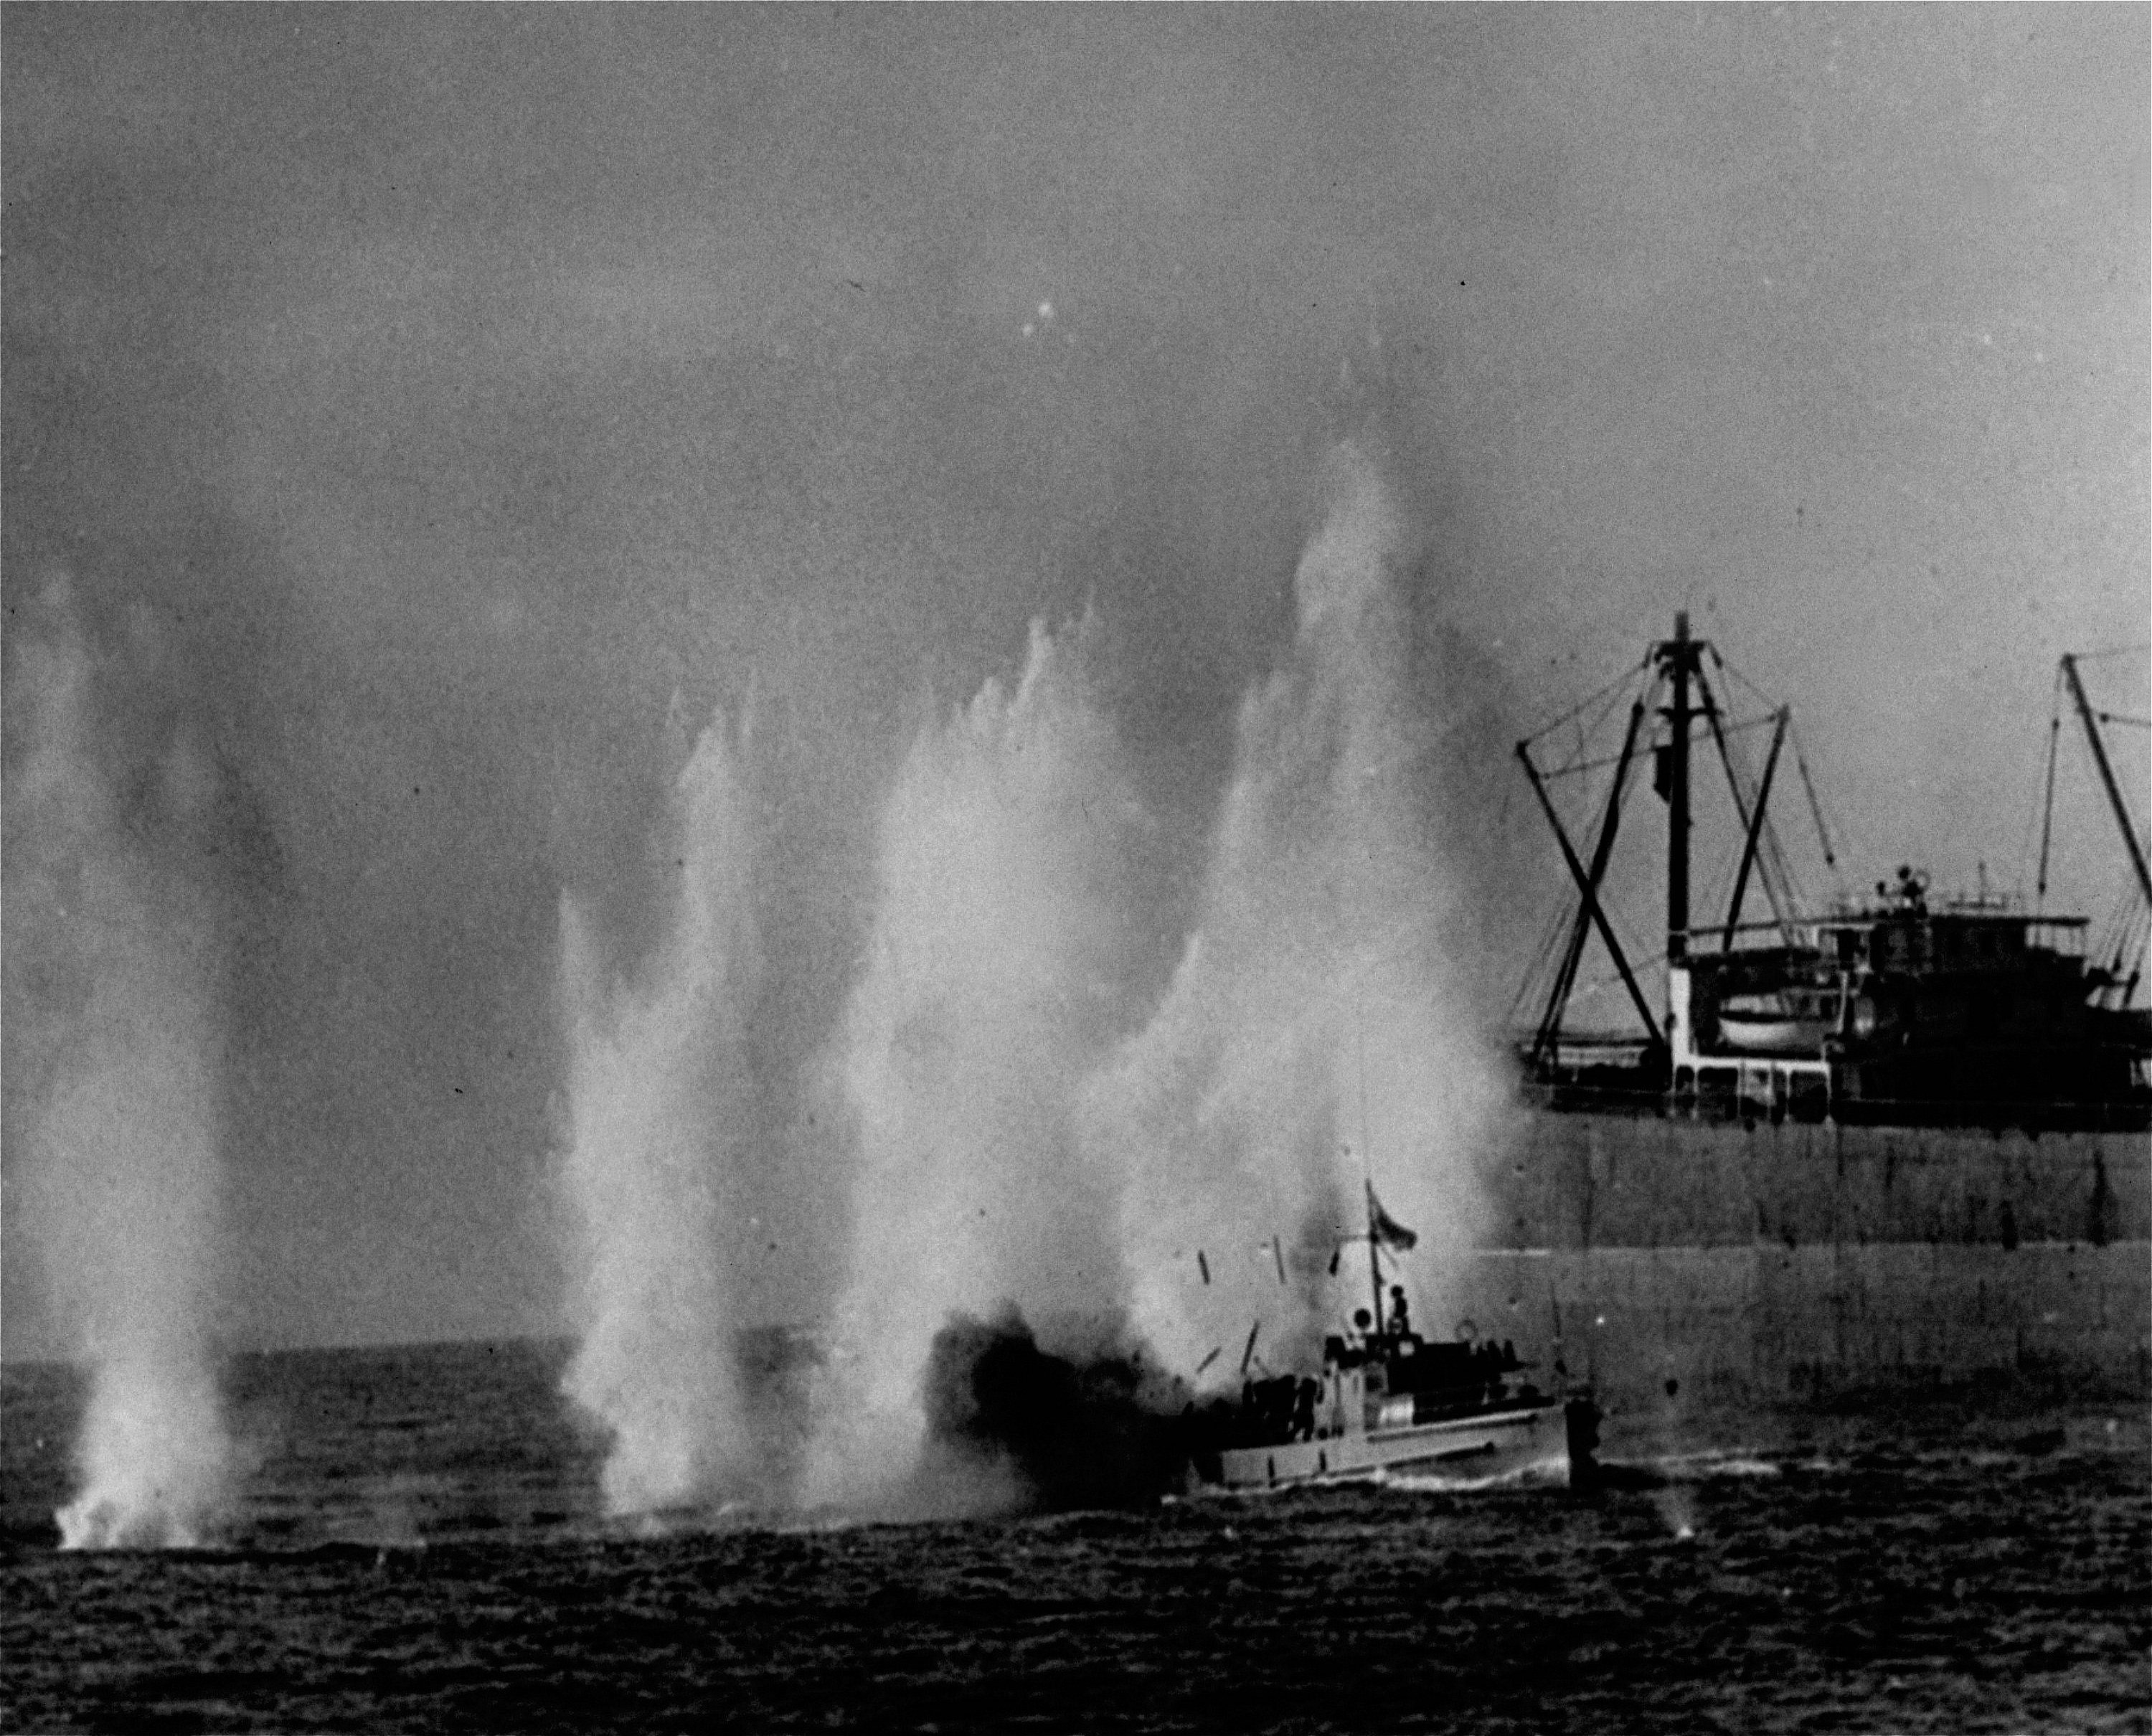 Rocket bursts erupt around a Greek Cypriot patrol boat in Xeros Harbor August 8, 1964, as a Turkish air force jet fighter attacked Greek Cypriot installations amid Turkey's bid to prevent the fall of Kokkina (Erenköy). Greek Cypriot President Archbishop Makarios threatened to attack every Turkish Cypriot village on the island August 9 unless Turkish attacks were halted. (AP Photo)